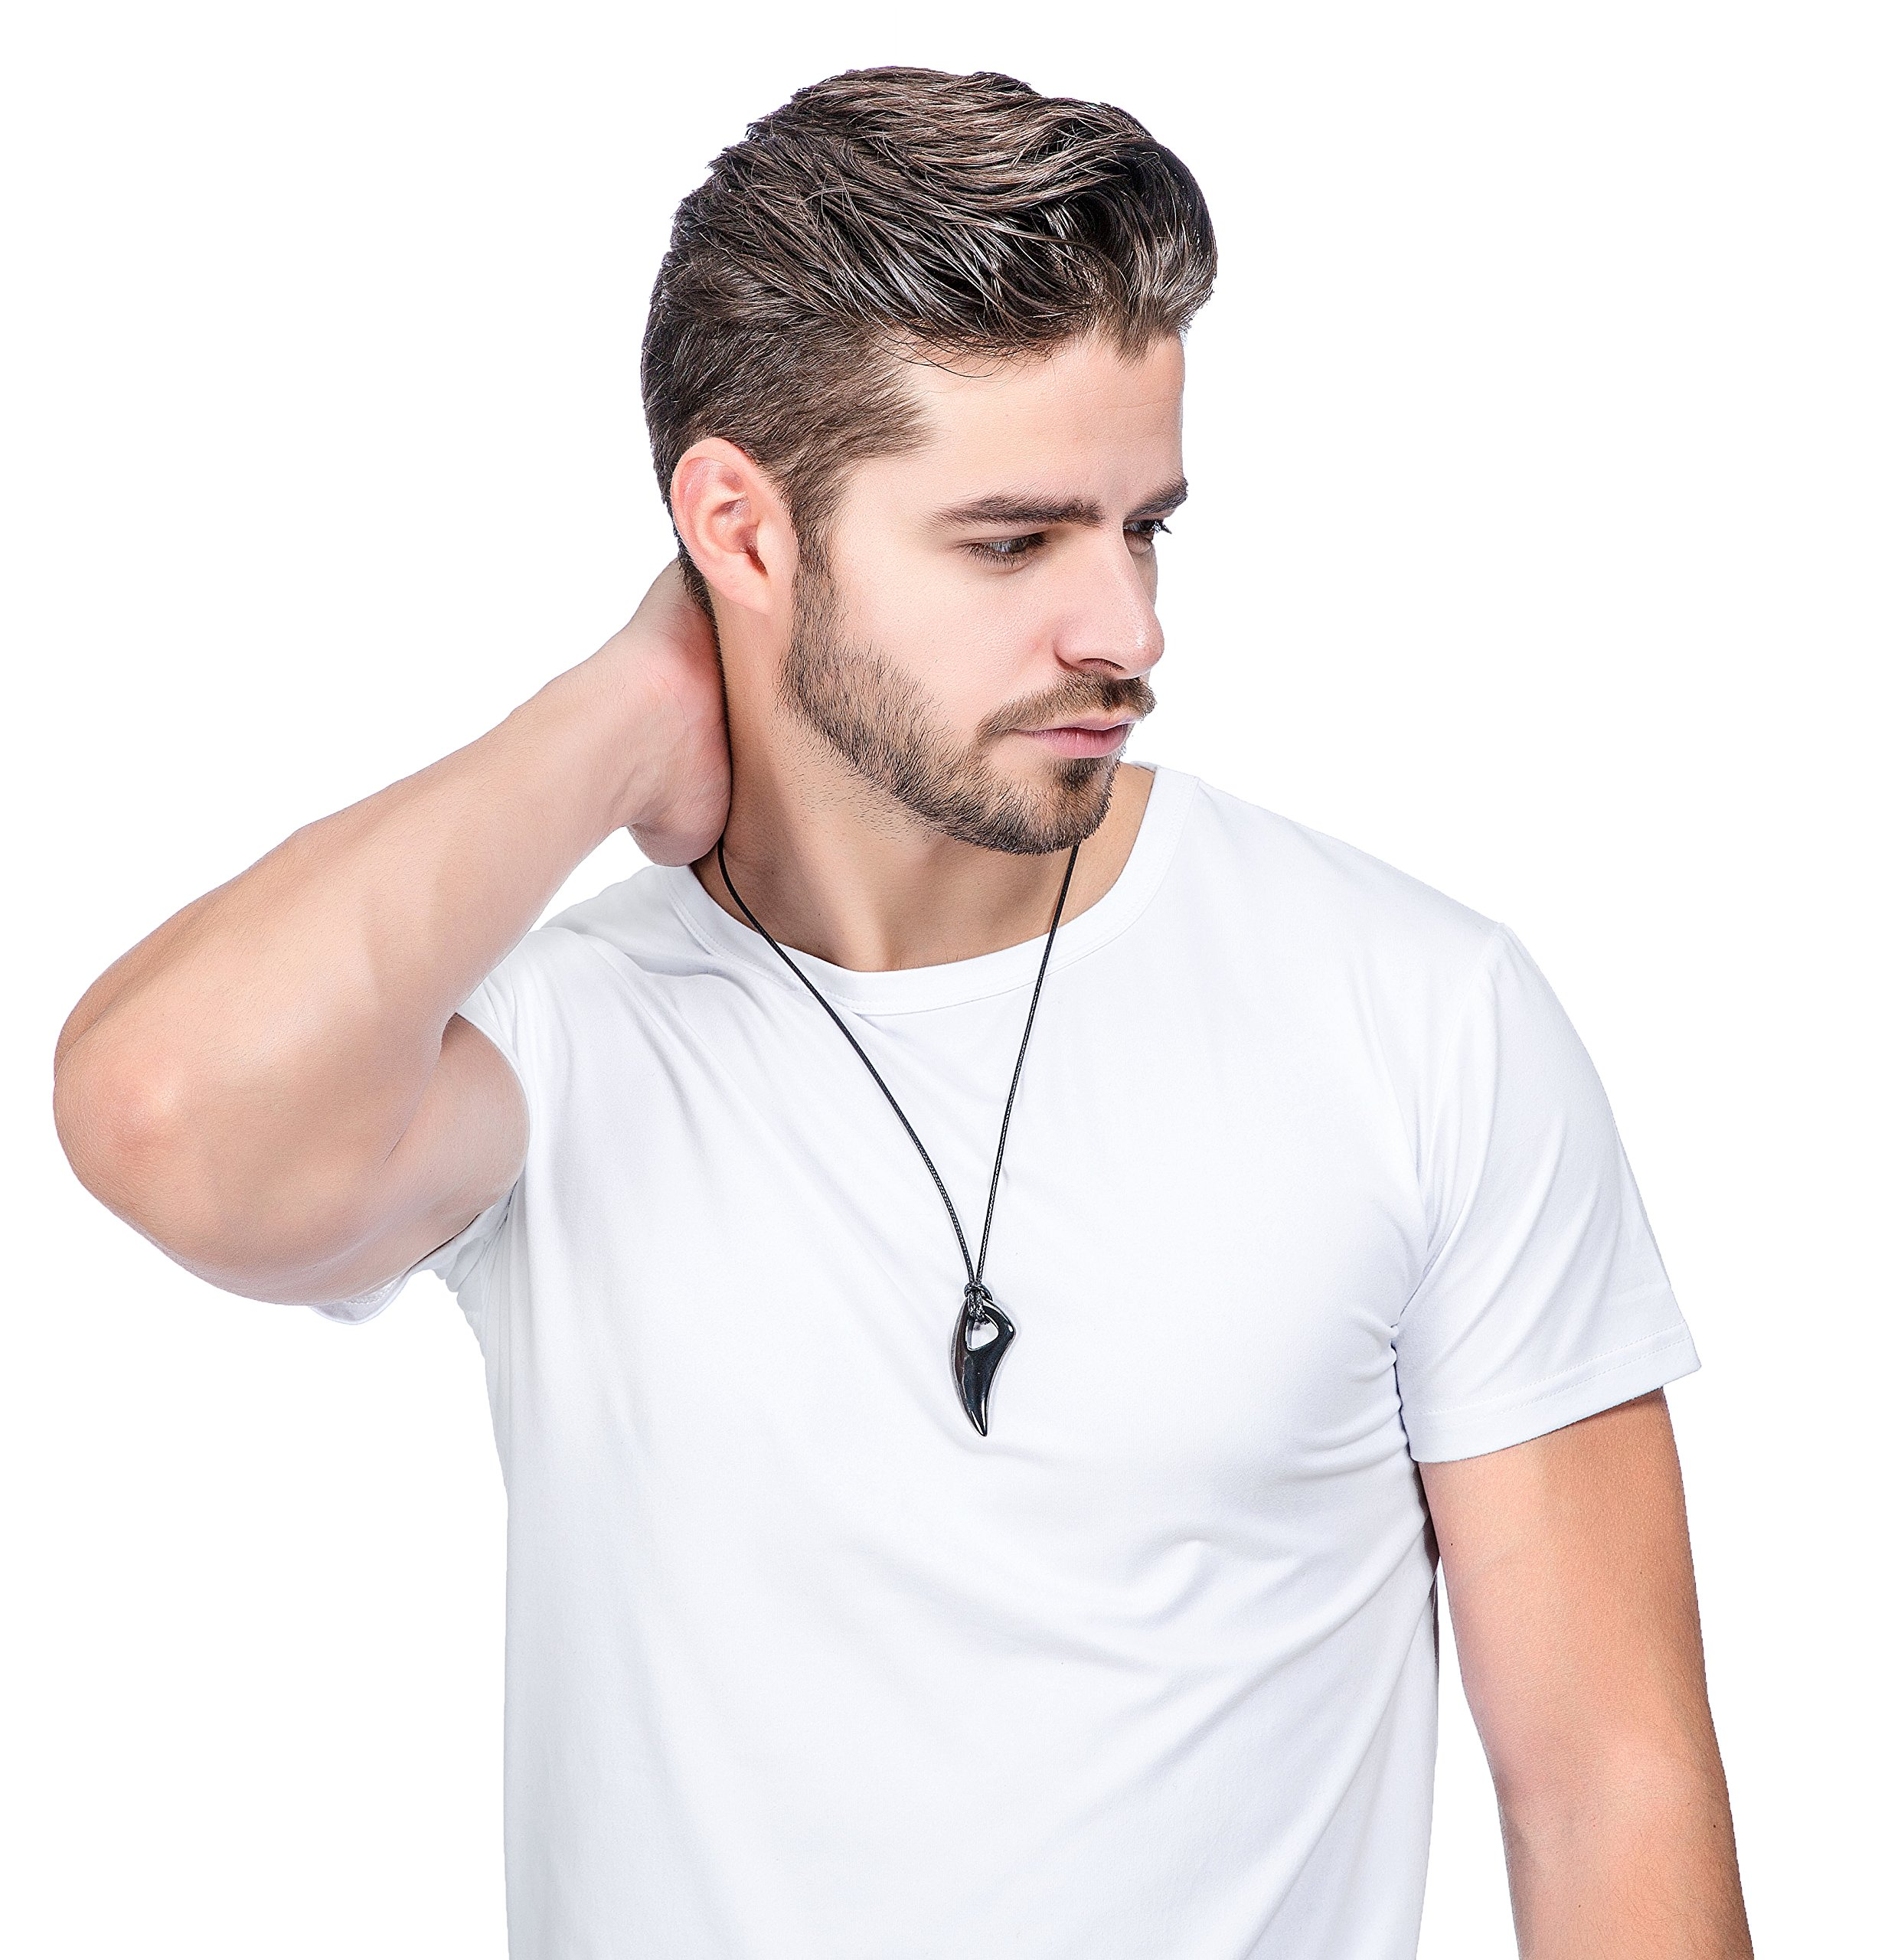 Jstyle Stainless Steel Necklace for Men Necklace Chain Spear Wolf Teeth Pendant Adjustable Chains 2 Set by Jstyle (Image #7)